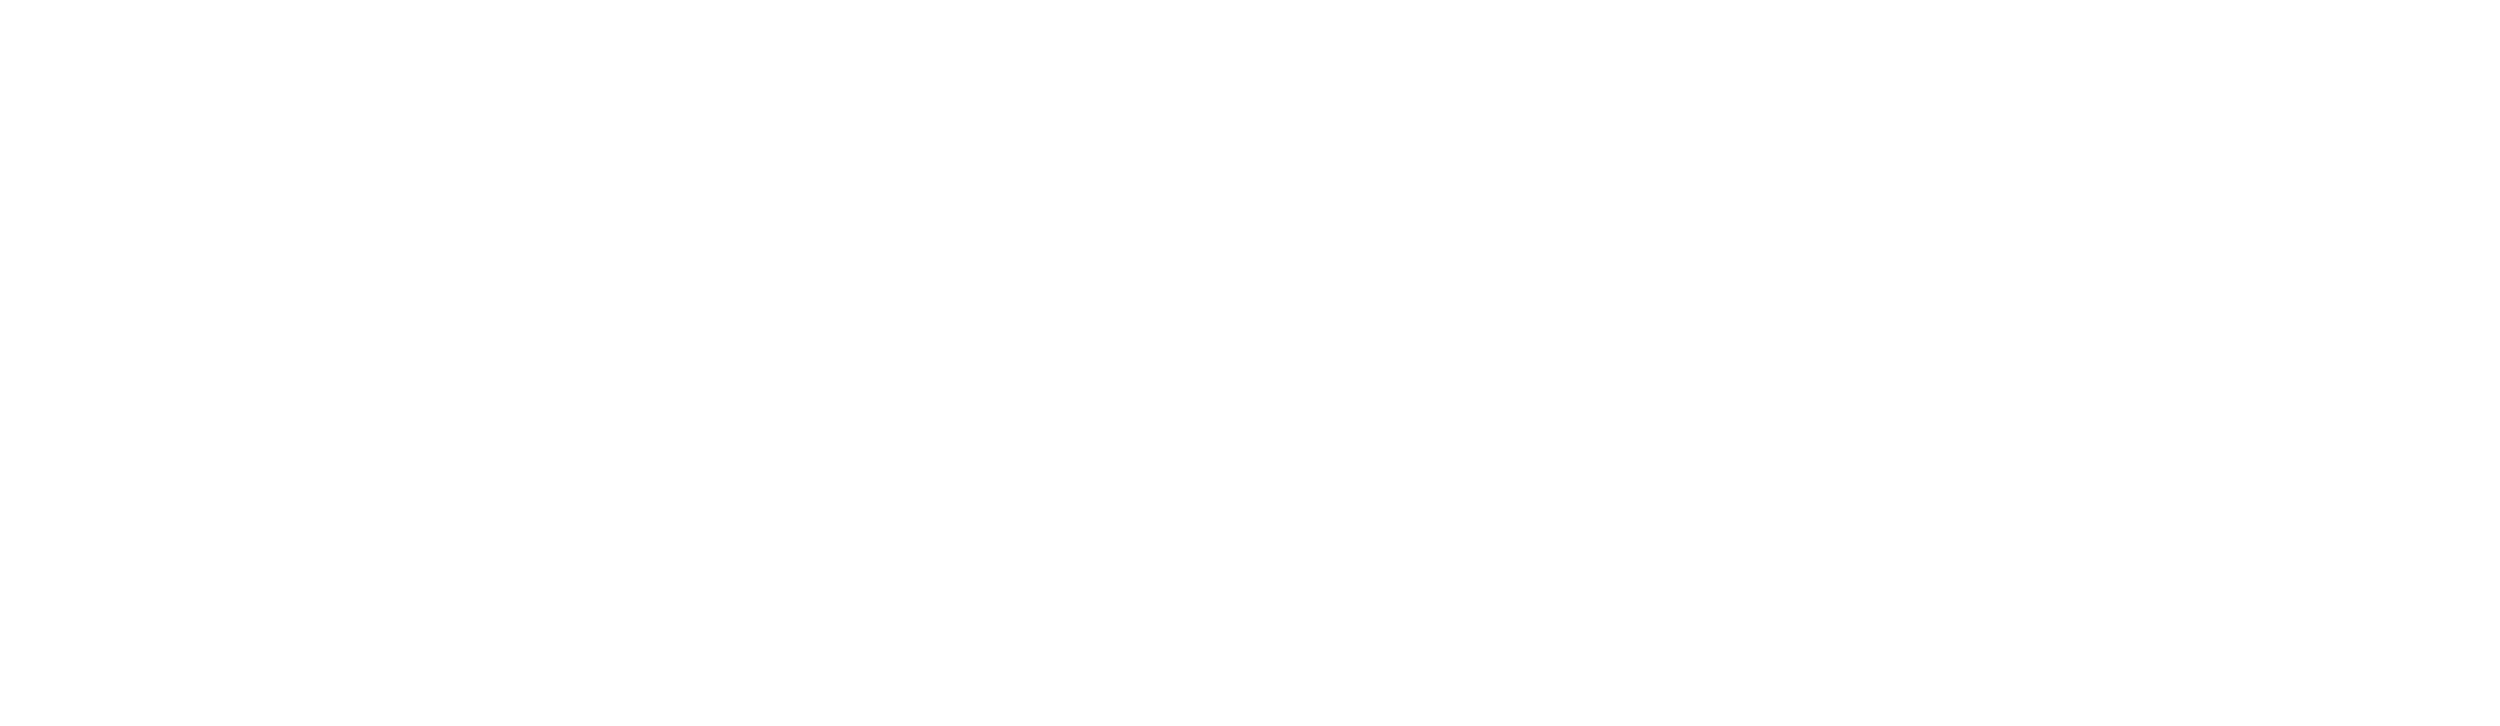 WINNER-LEOS-4.png